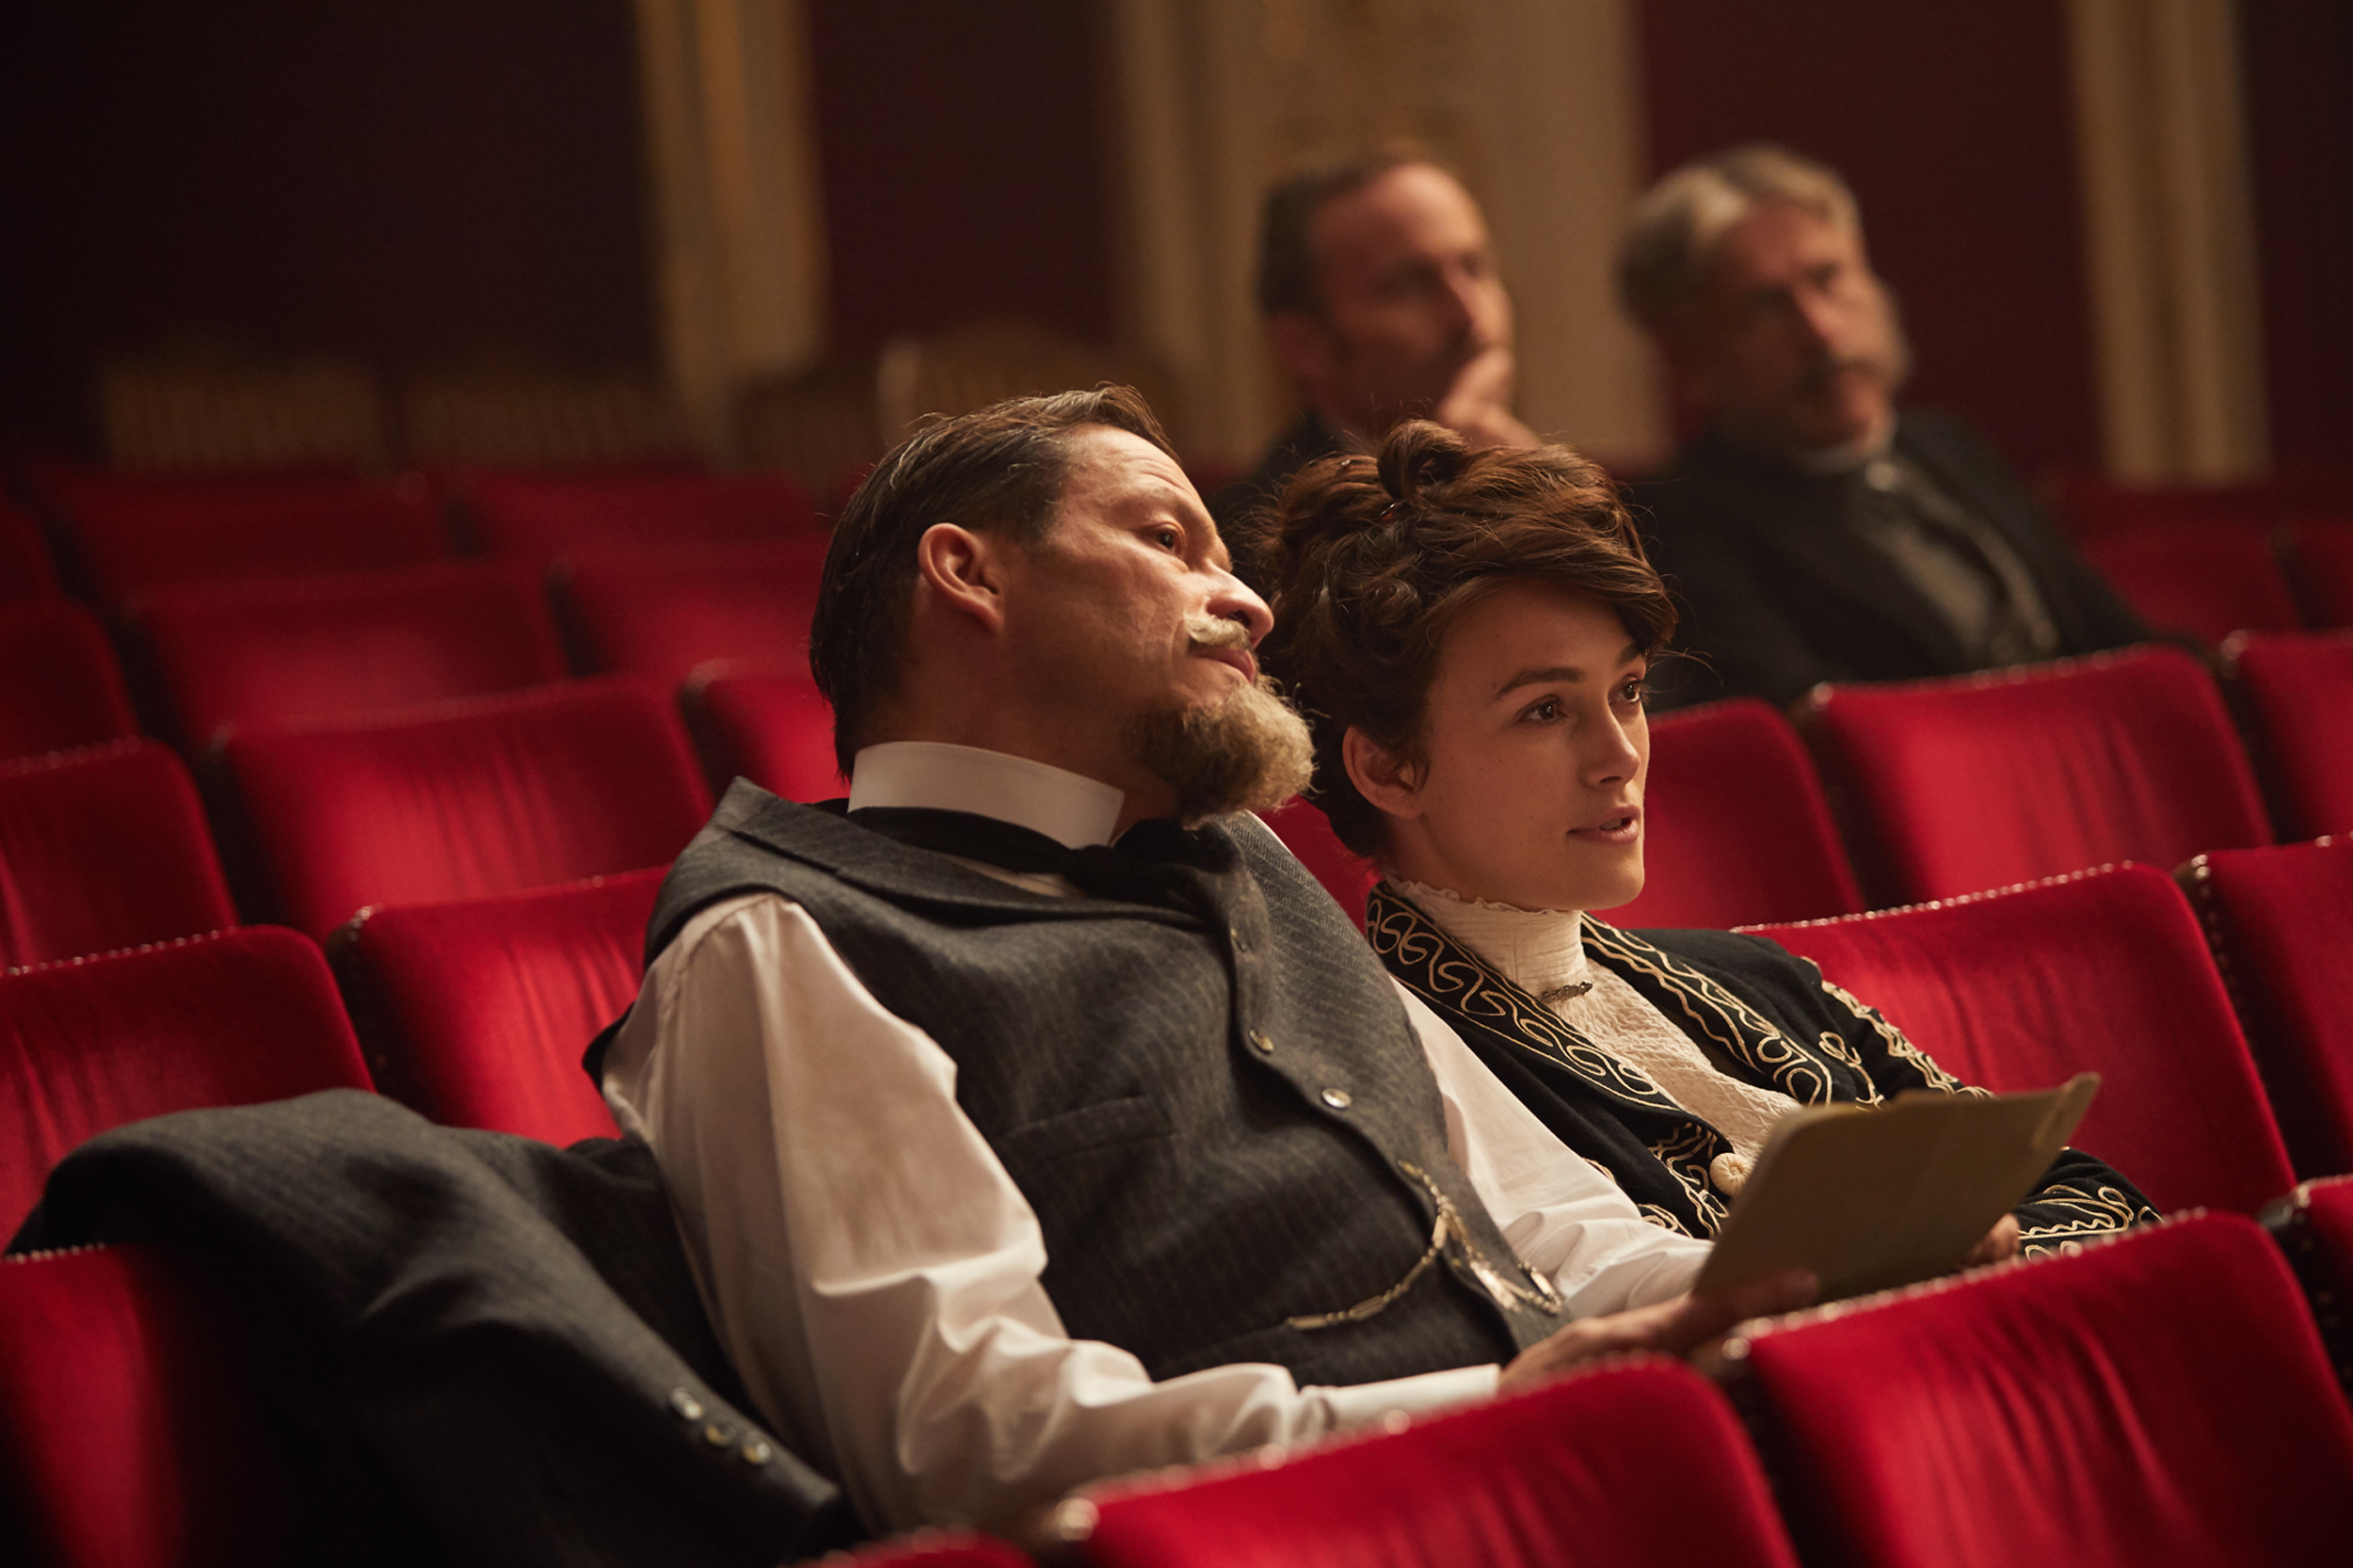 Keira Knightley and Dominic West in Collette. Photo: Transmission Films